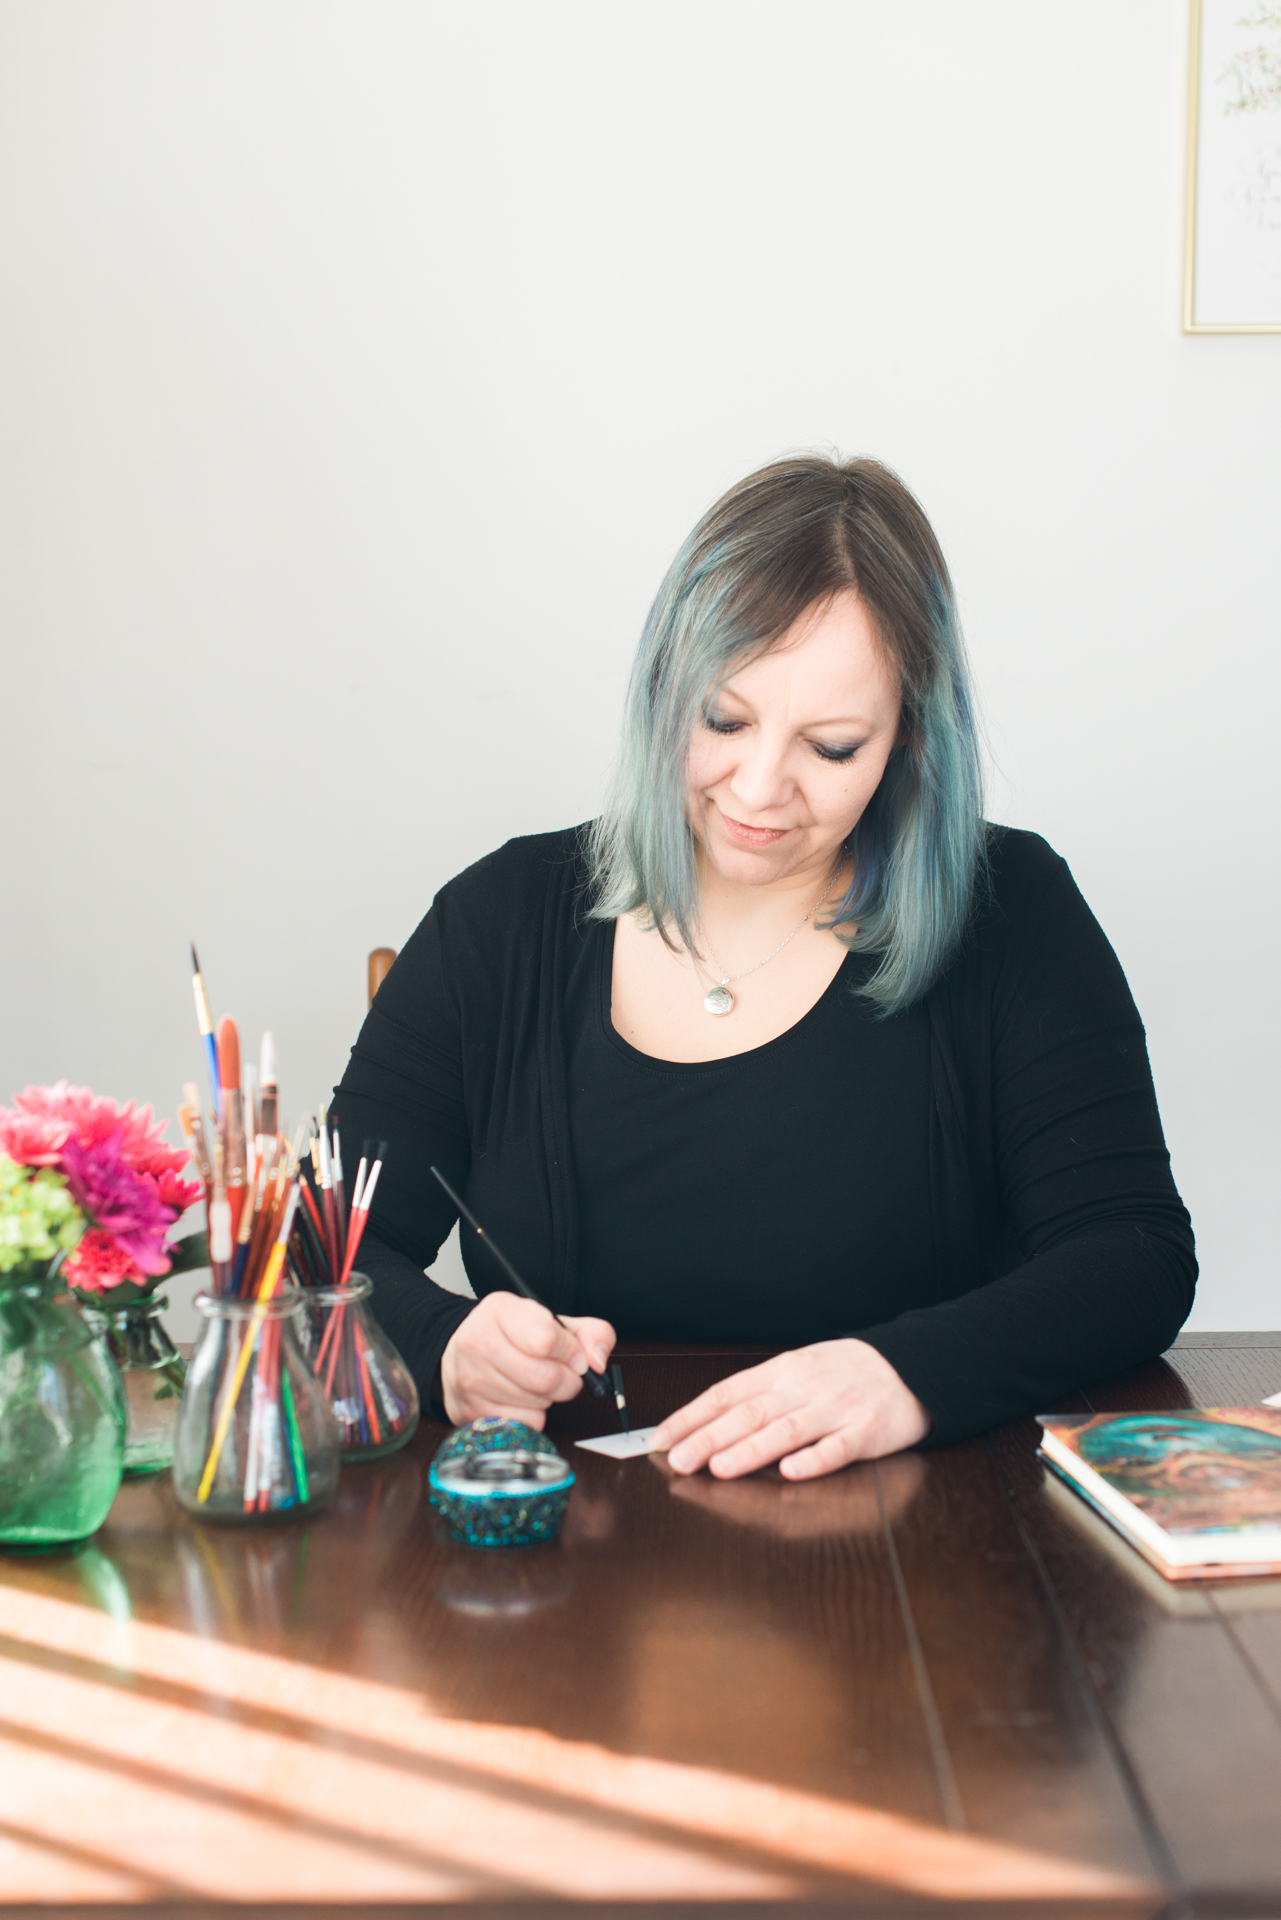 How long does it take to learn modern calligraphy?